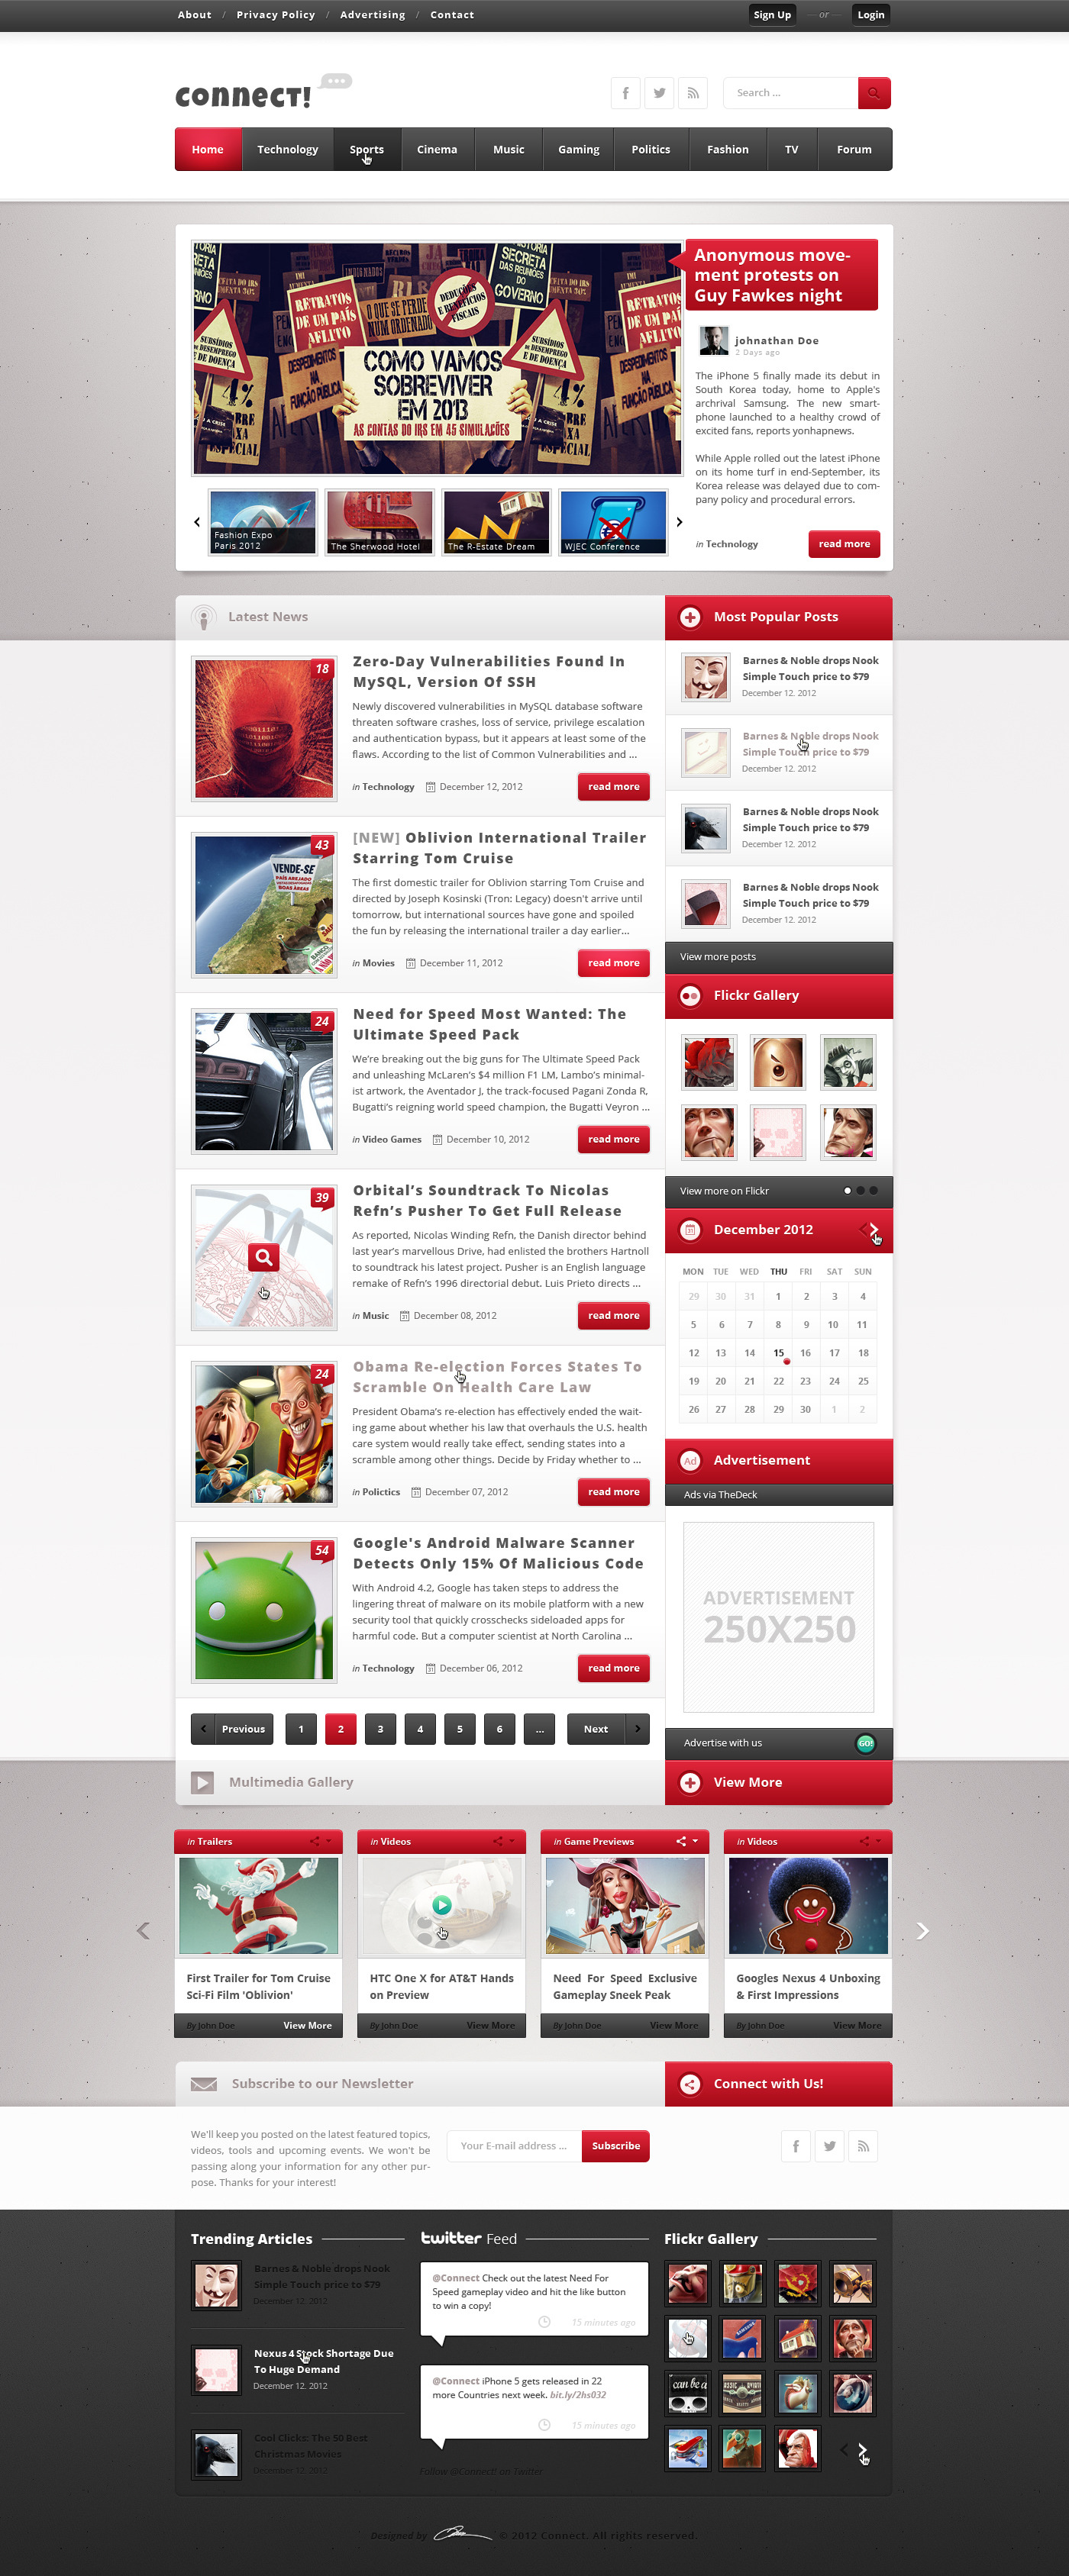 Connect - Premium PSD Magazine Template by Ttpmc | ThemeForest